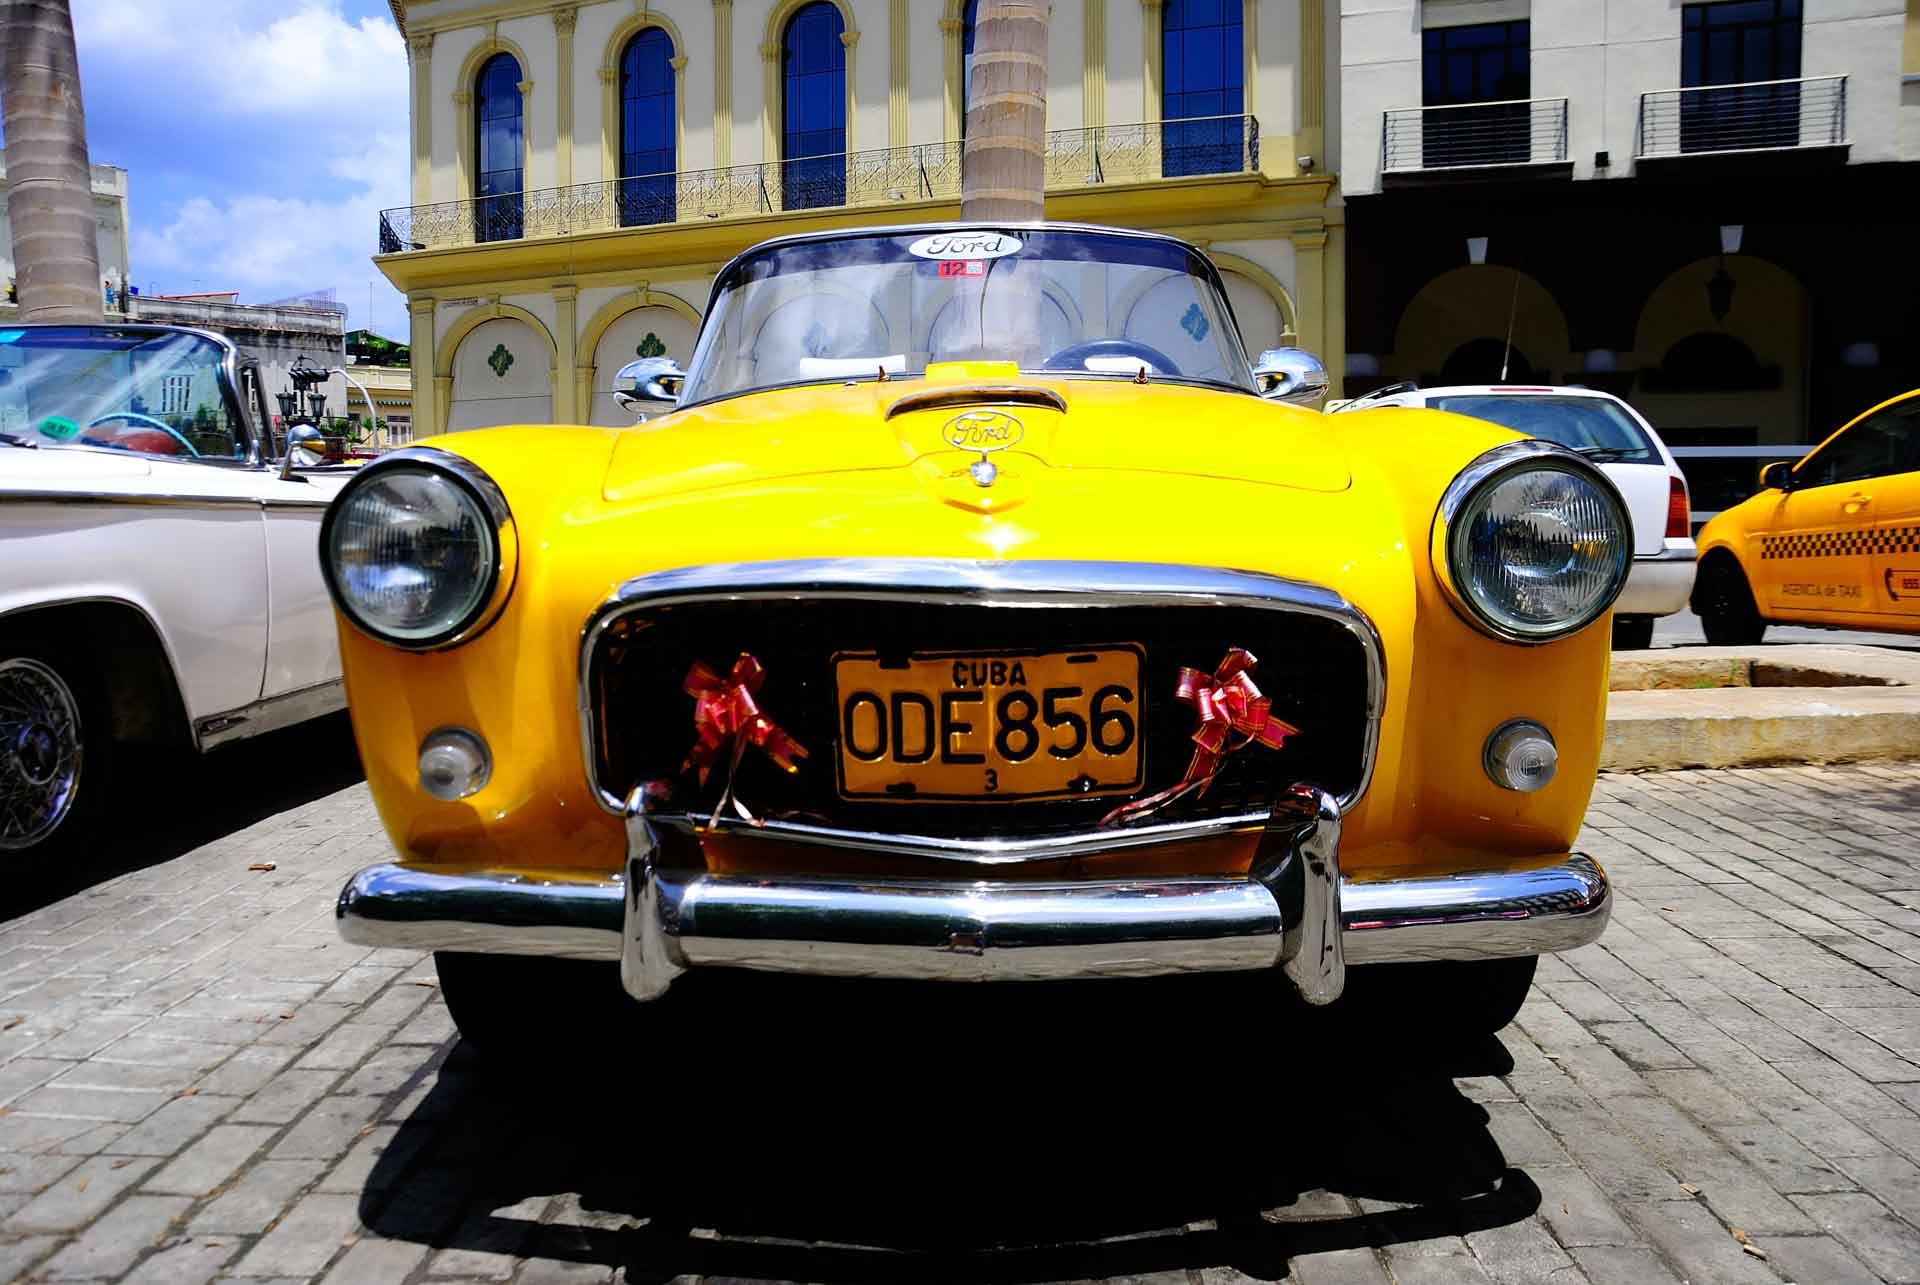 Havana Cuba Vintage Car 4, havana, cuba, pescart, photo blog, travel blog, blog, photo travel blog, enrico pescantini, pescantini